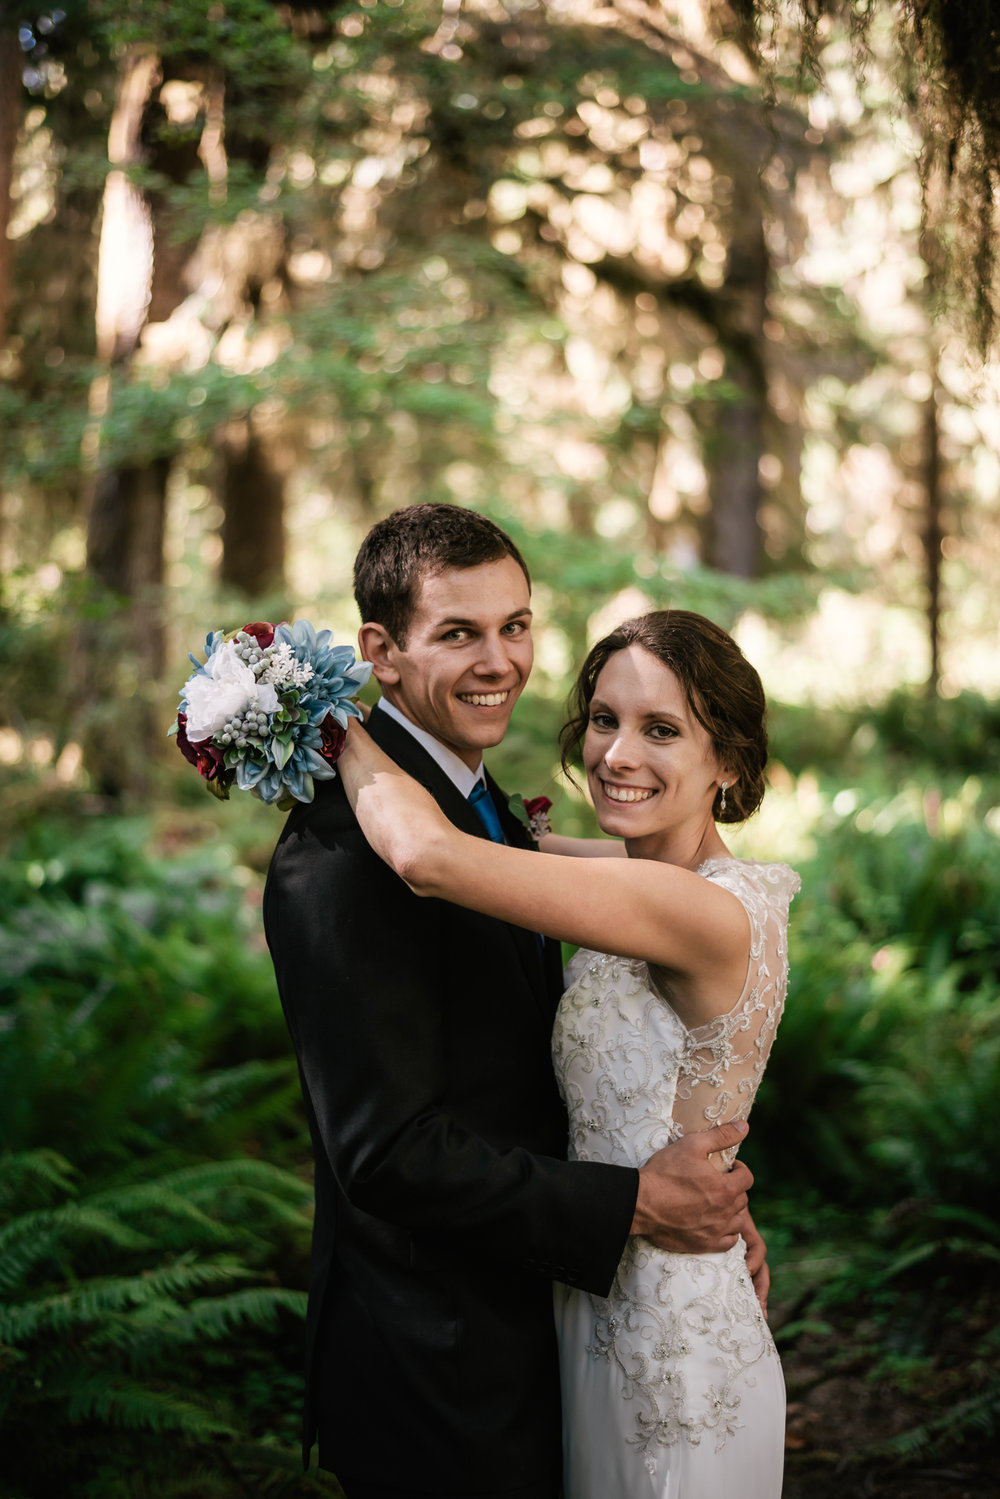 Classic wedding photography on the Olympic Peninsula.